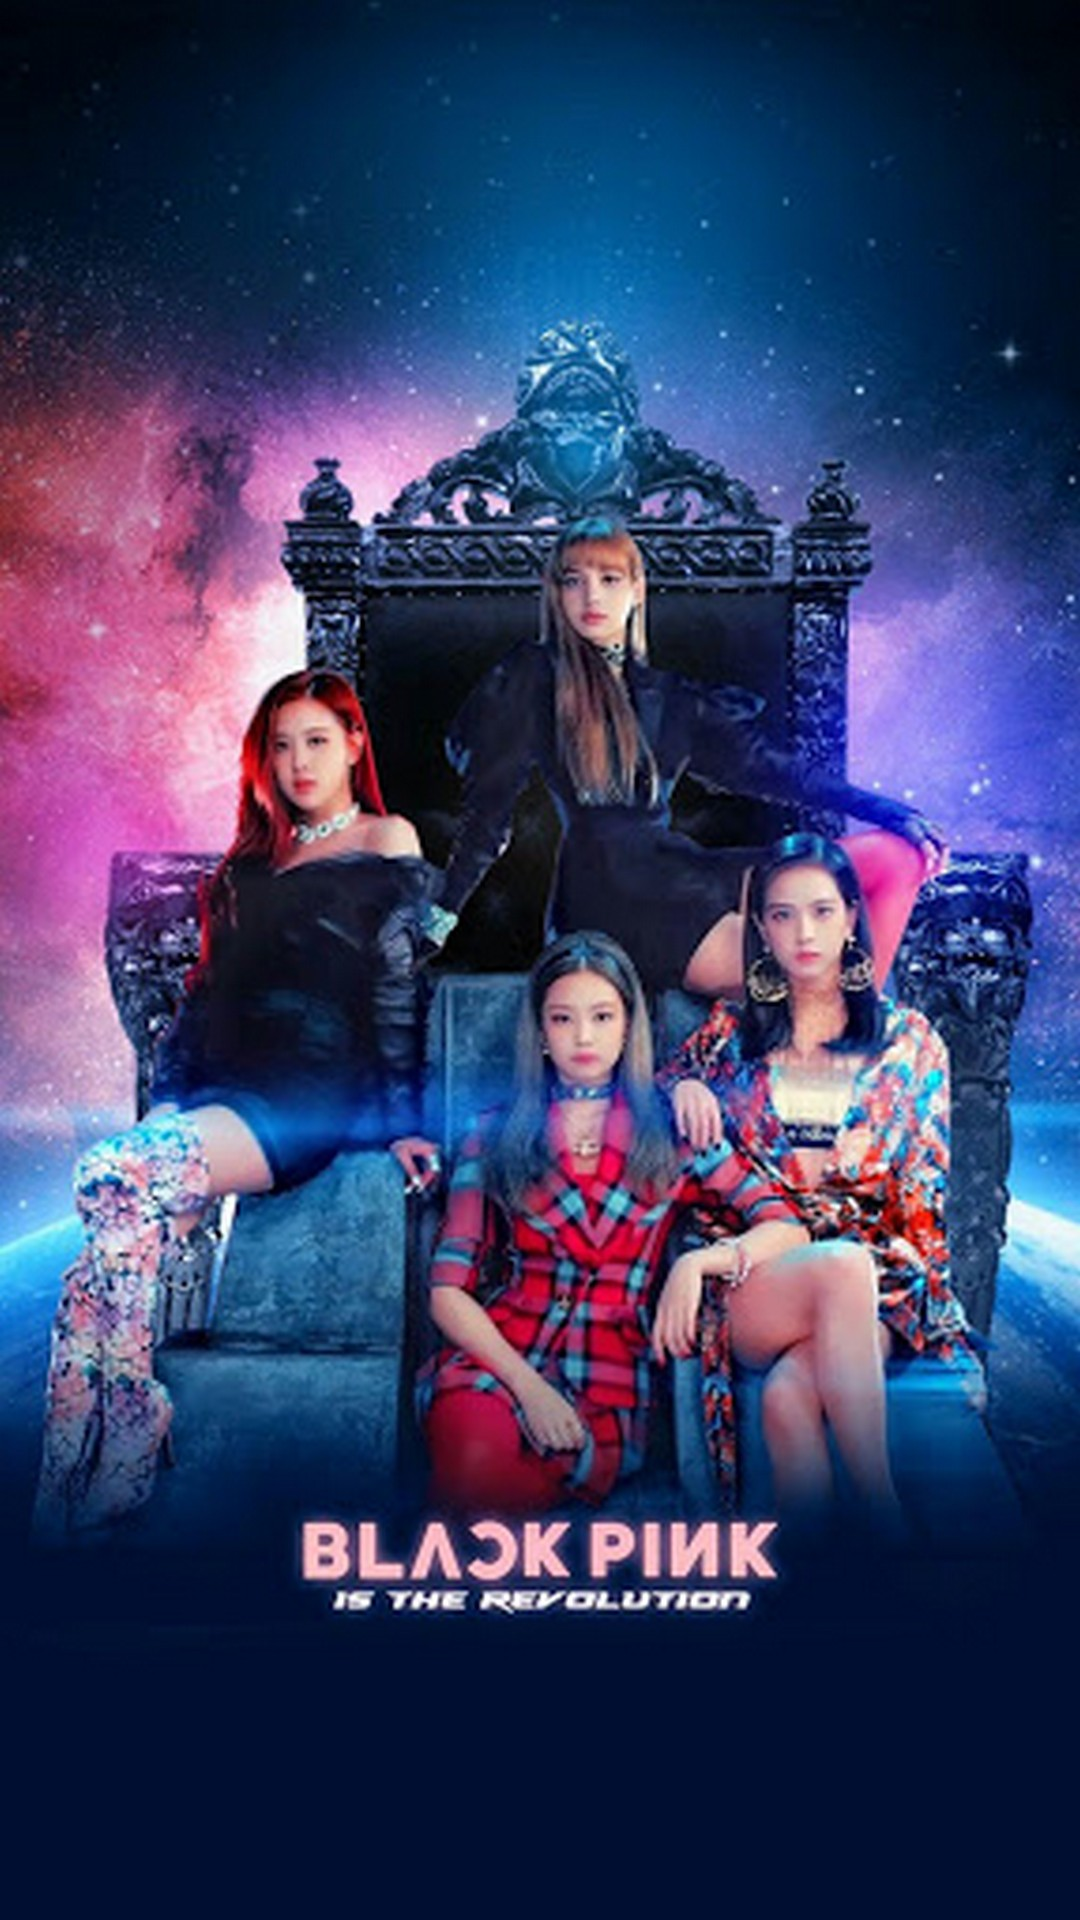 Blackpink Wallpaper iPhone with high-resolution 1080x1920 pixel. You can use this wallpaper for your iPhone 5, 6, 7, 8, X, XS, XR backgrounds, Mobile Screensaver, or iPad Lock Screen